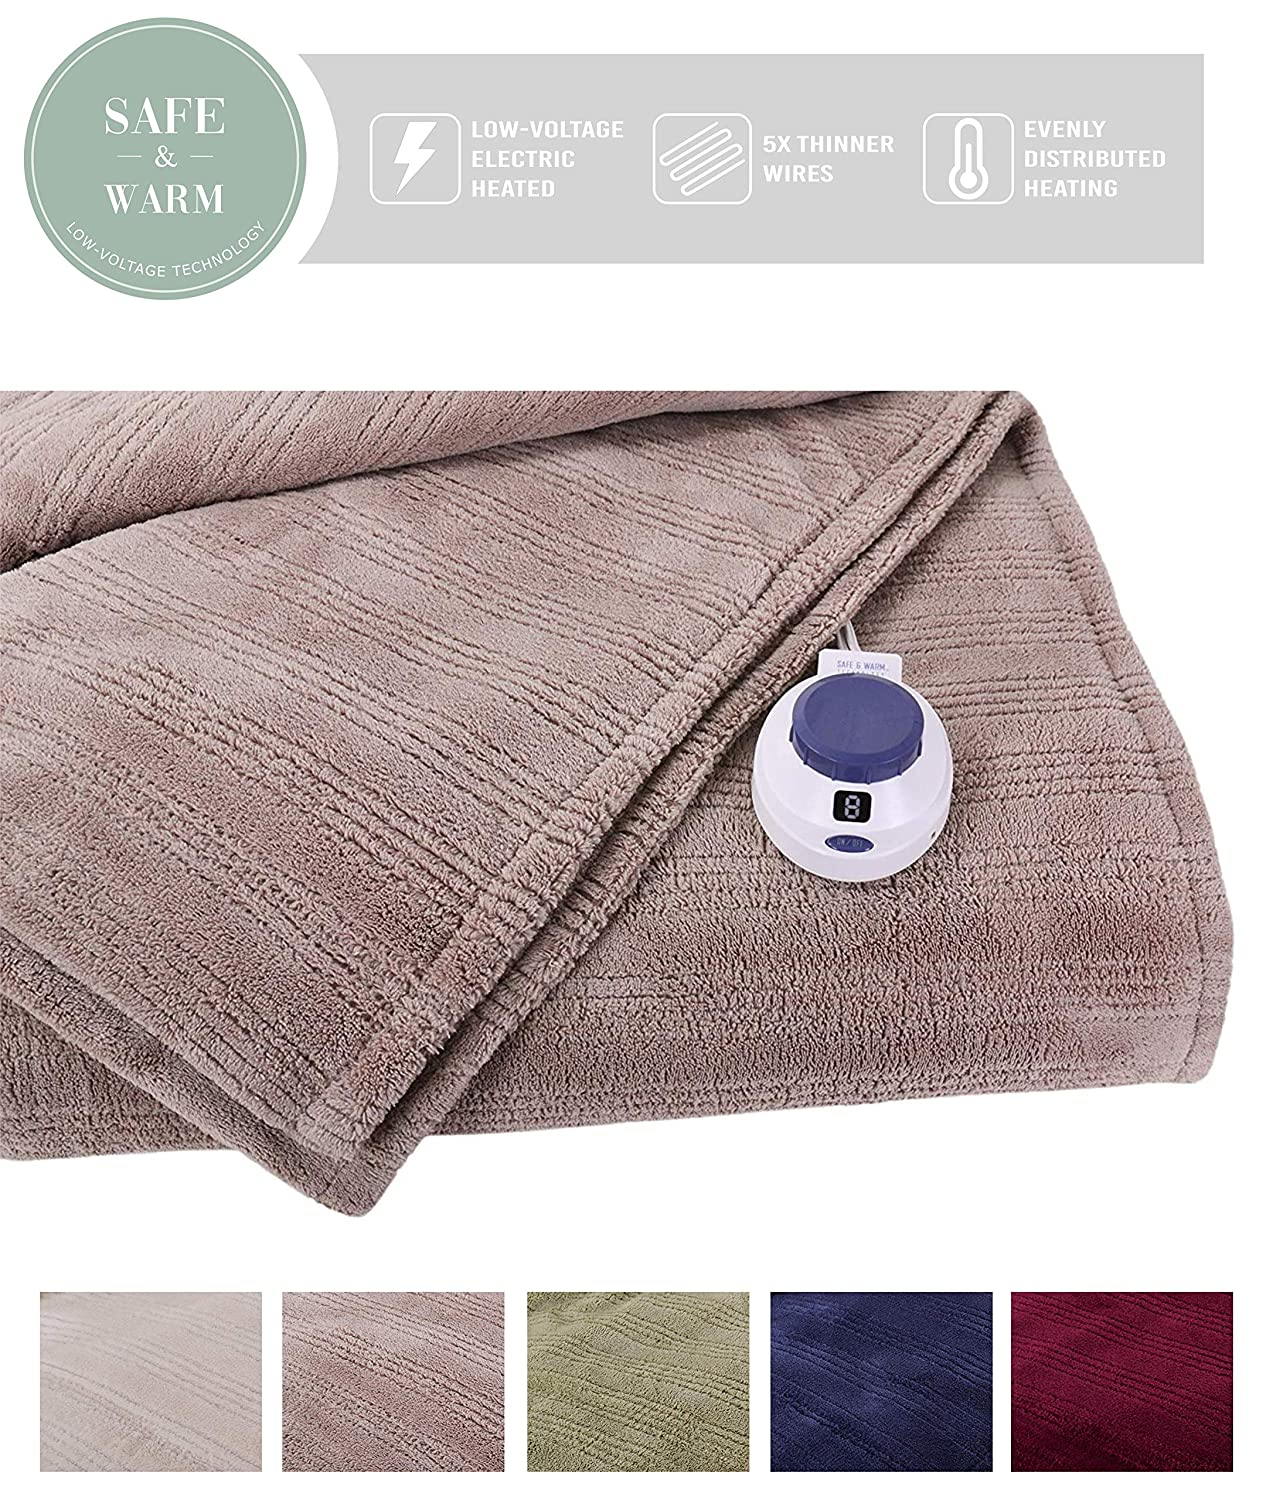 SoftHeat by Perfect Fit | Ultra Soft Plush Electric Heated Warming Blanket with Safe & Warm Low-Voltage Technology (Twin, Beige)